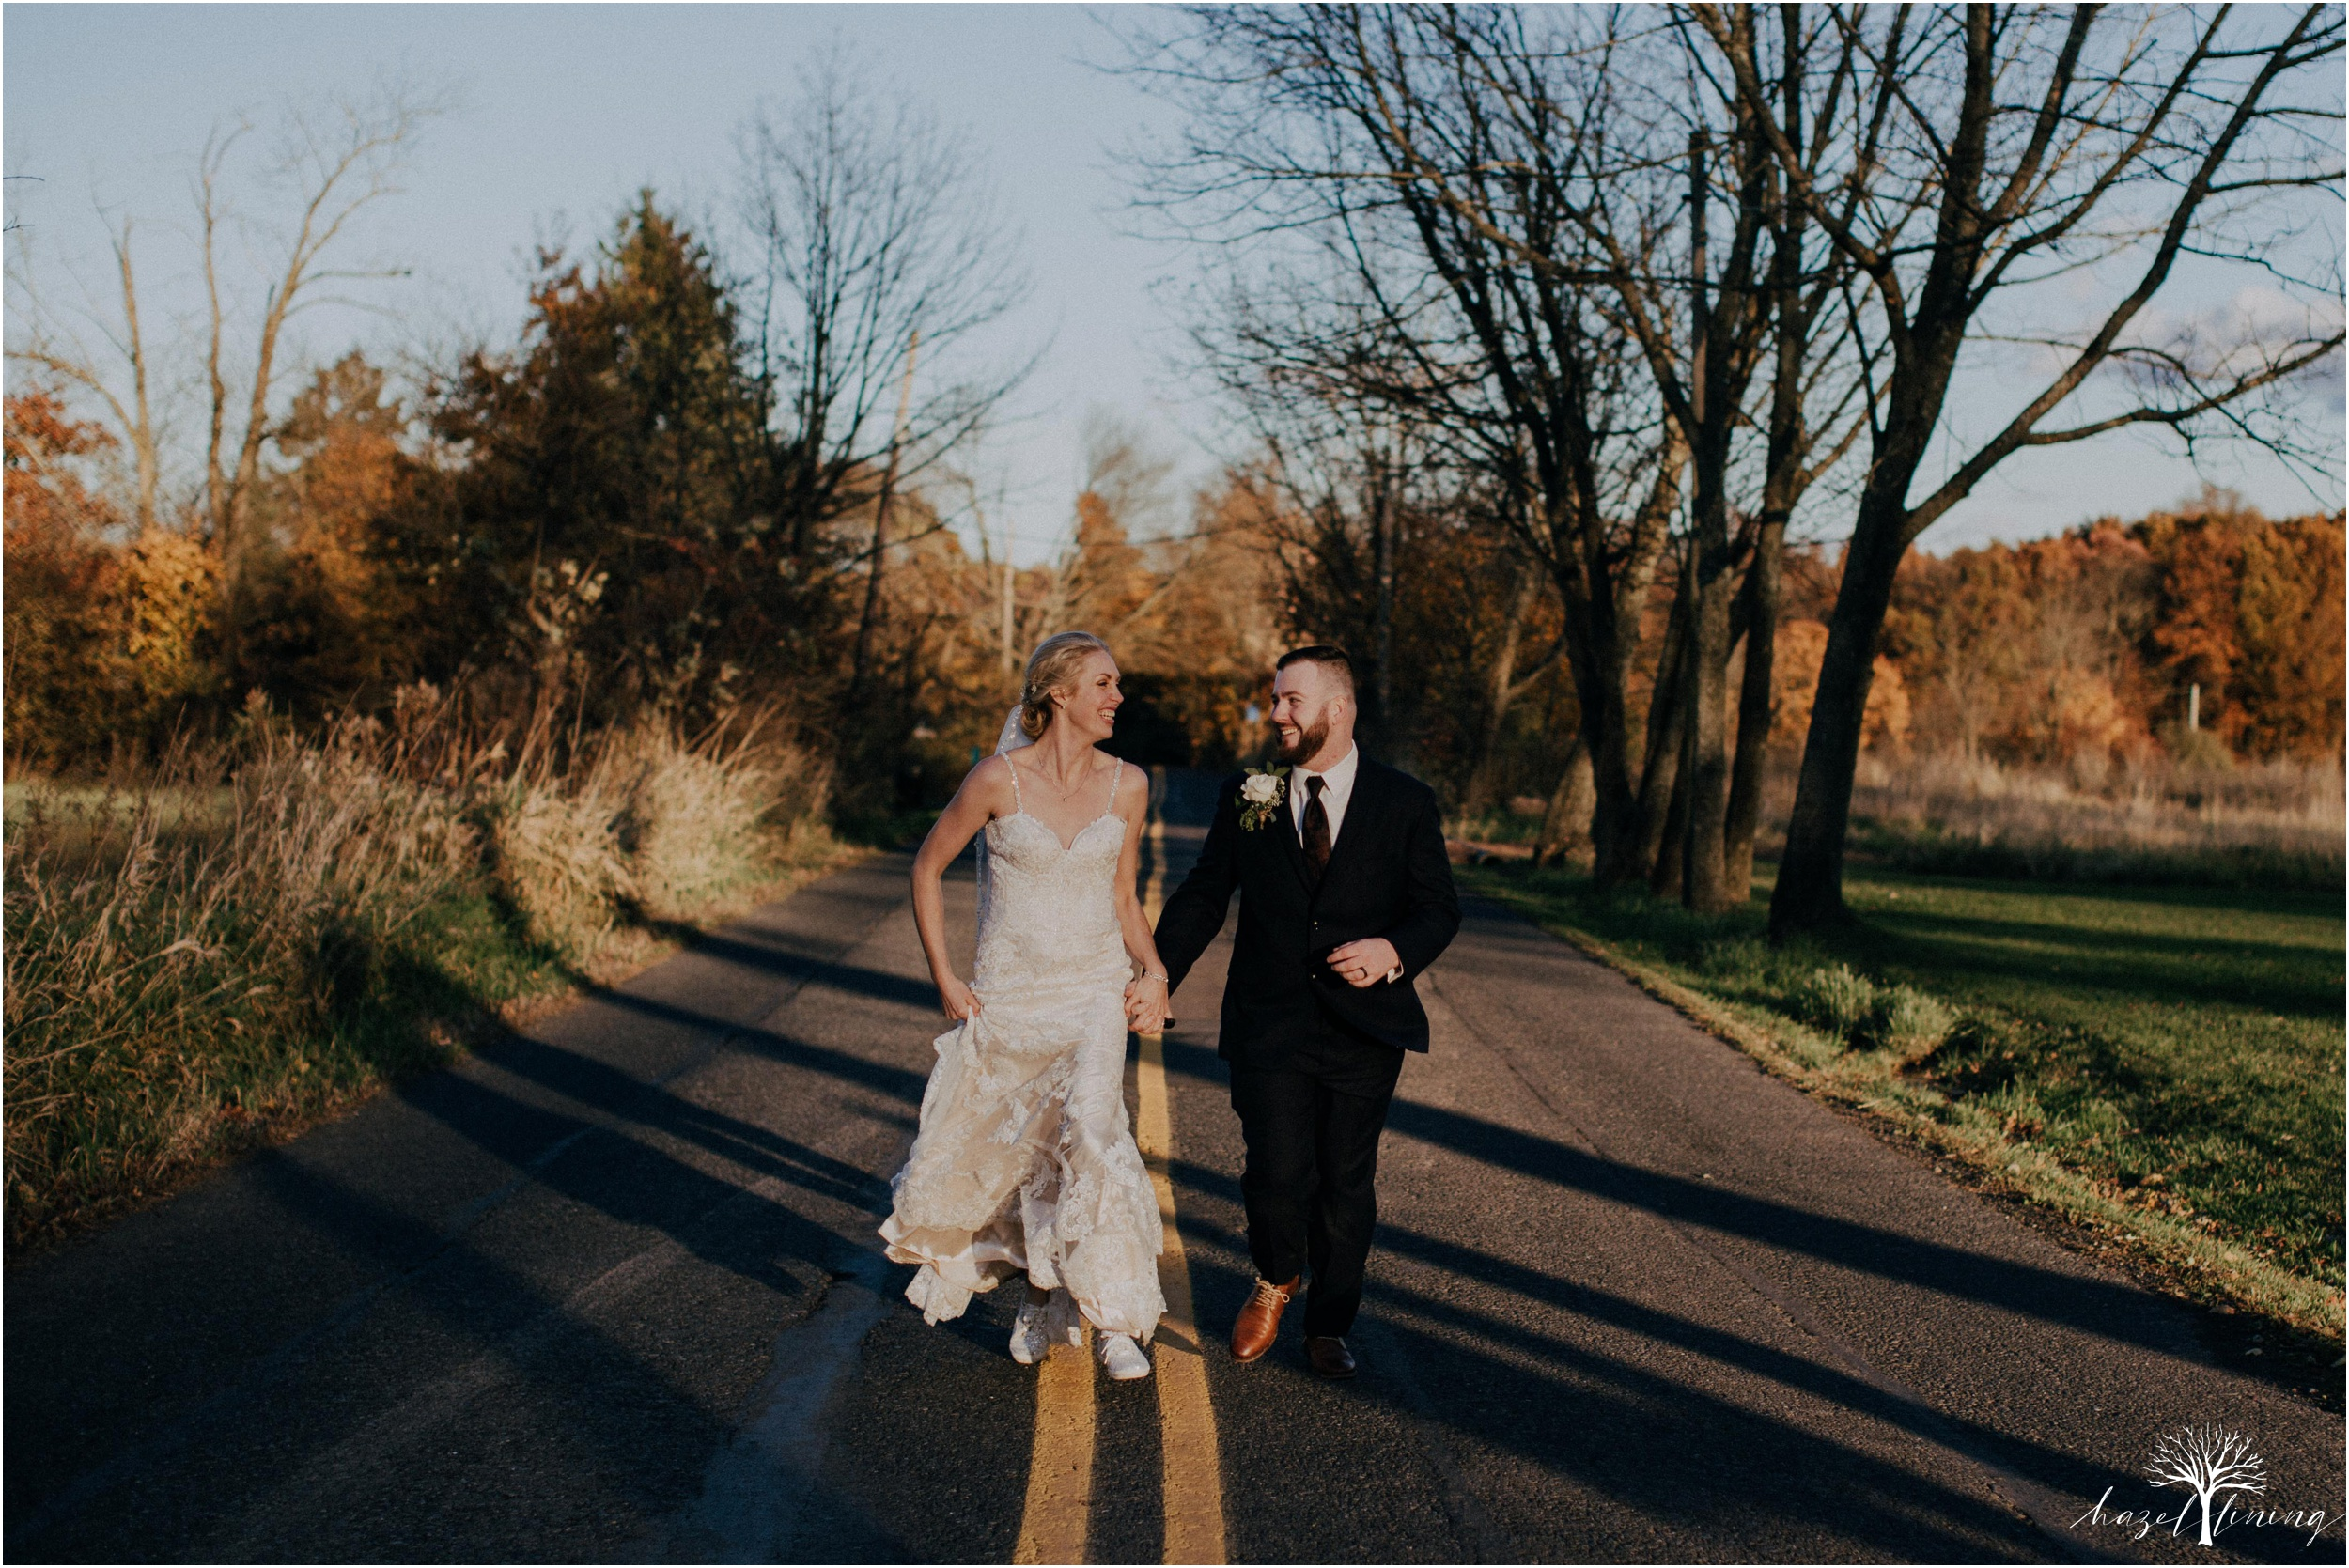 briana-krans-greg-johnston-farm-bakery-and-events-fall-wedding_0115.jpg